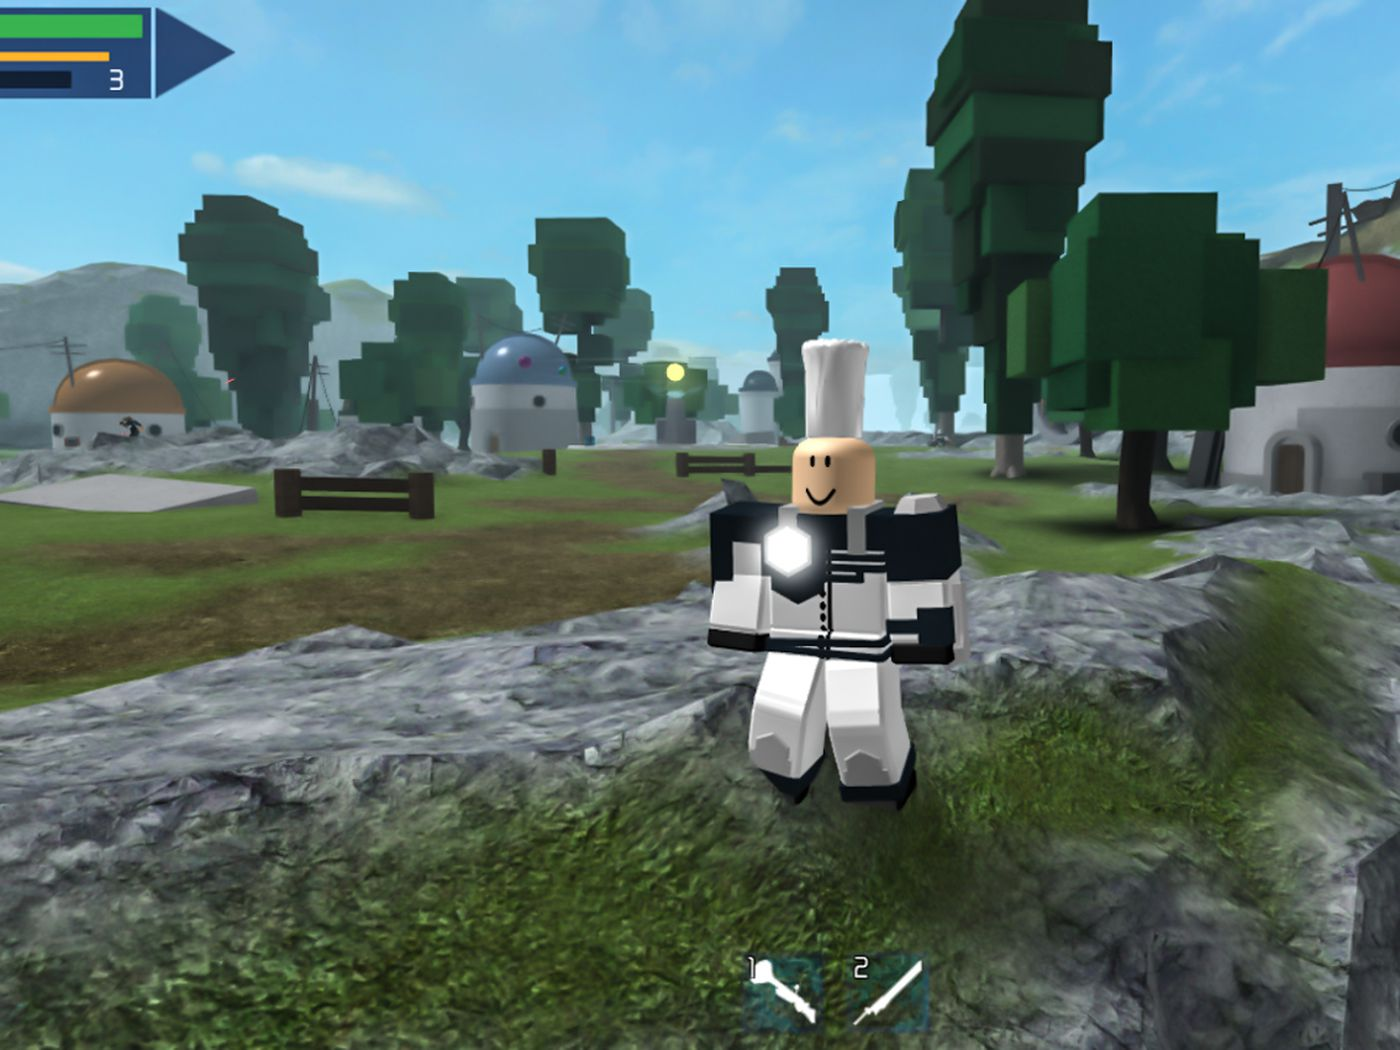 Roblox The Hit Gaming Company You May Not Have Heard Of Could Be